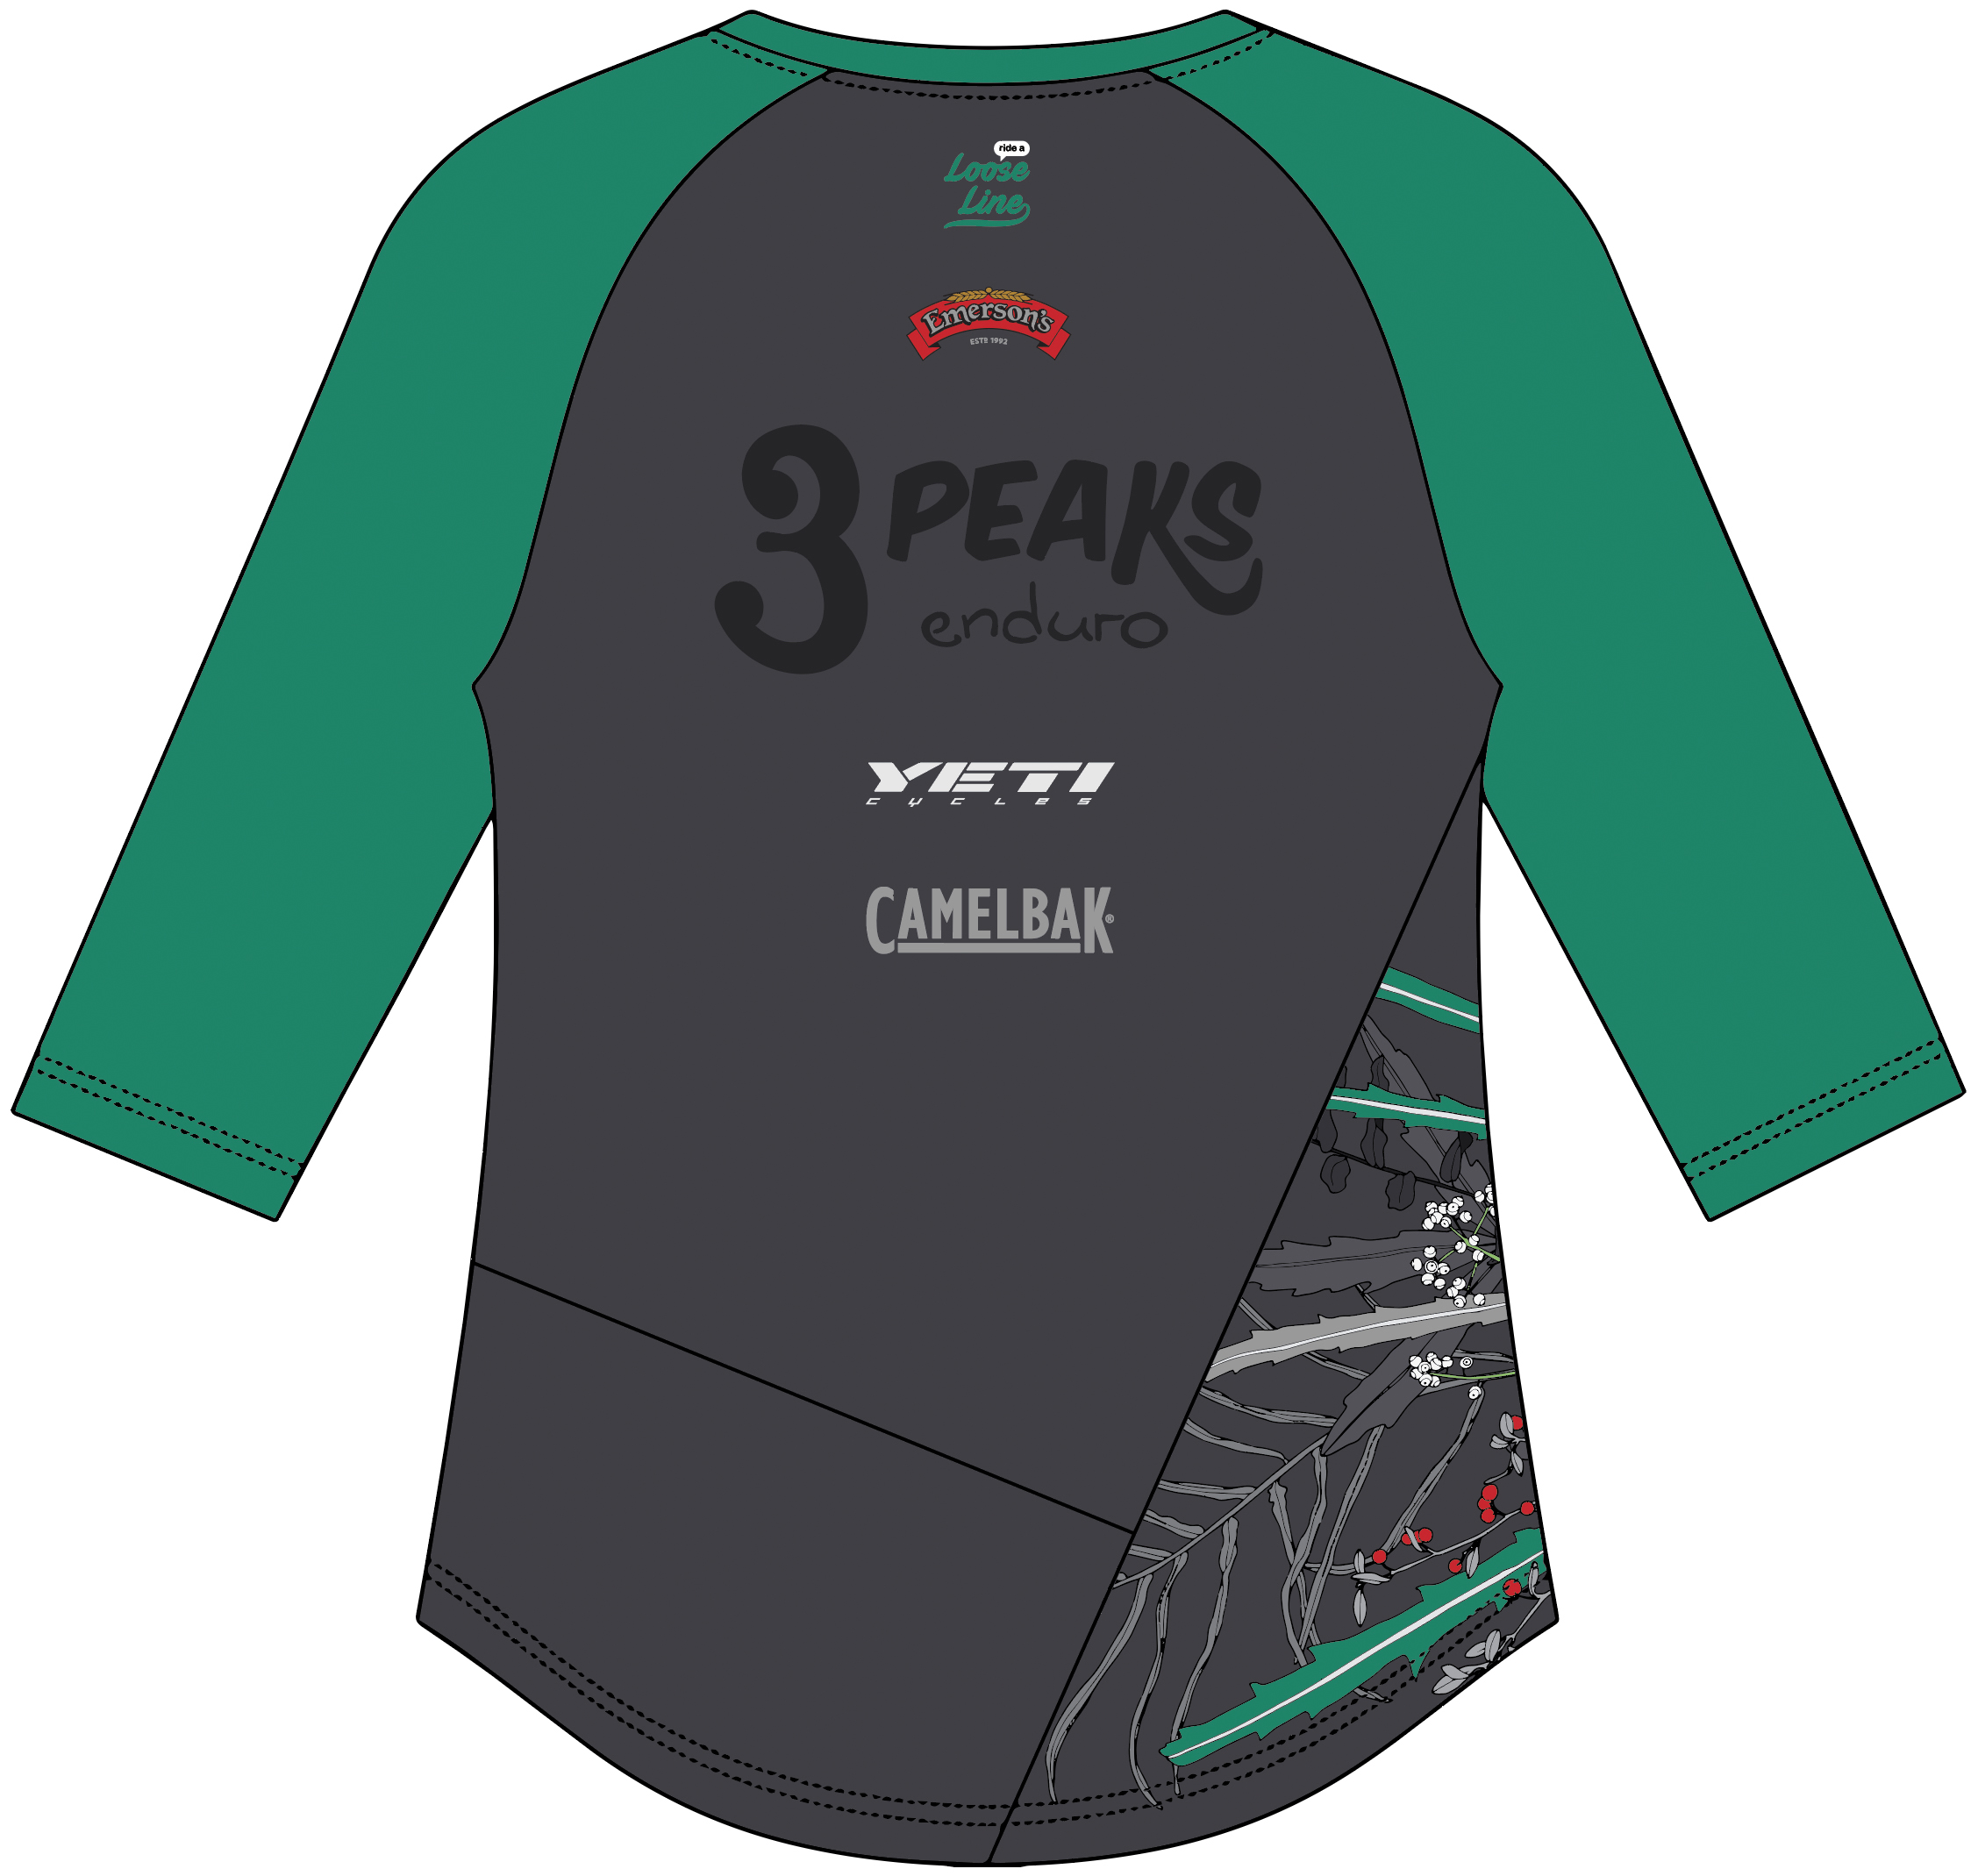 3-peaks-enduro-by-loose-line-womens-back 2.jpg